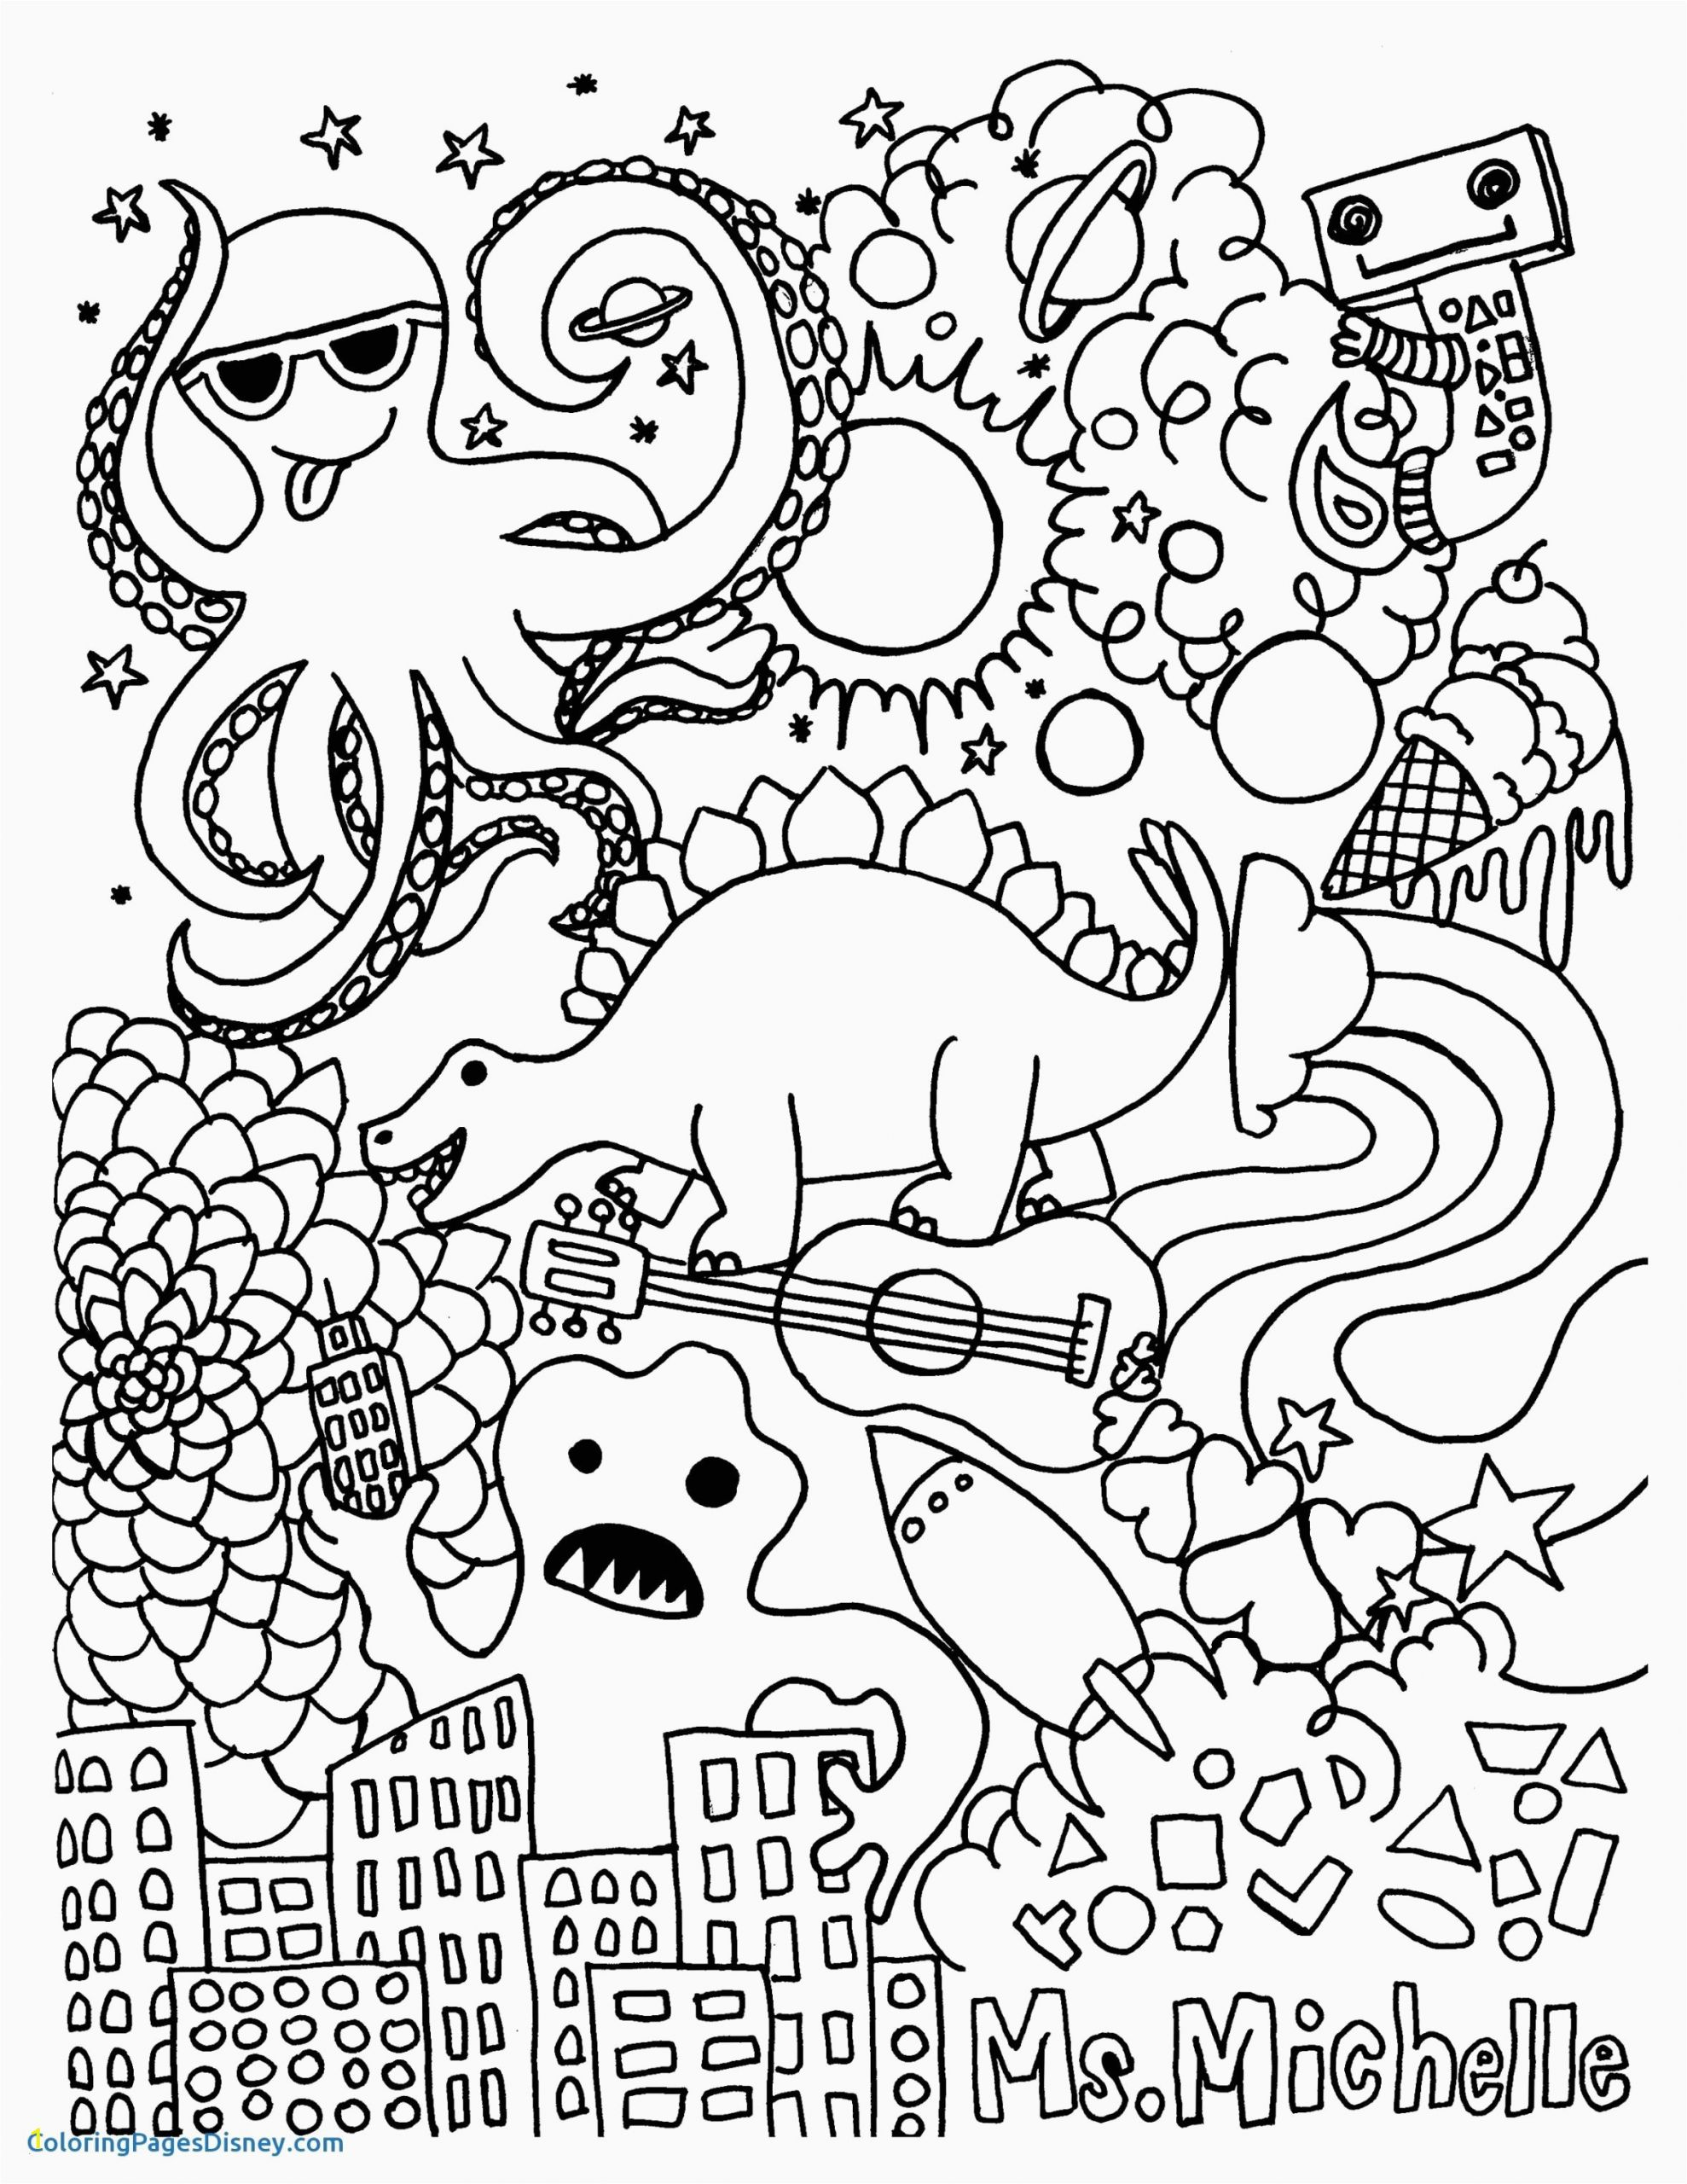 Hello Kitty Head Coloring Pages Hello Kitty Coloring Pages Hello Kitty Coloring Pages for